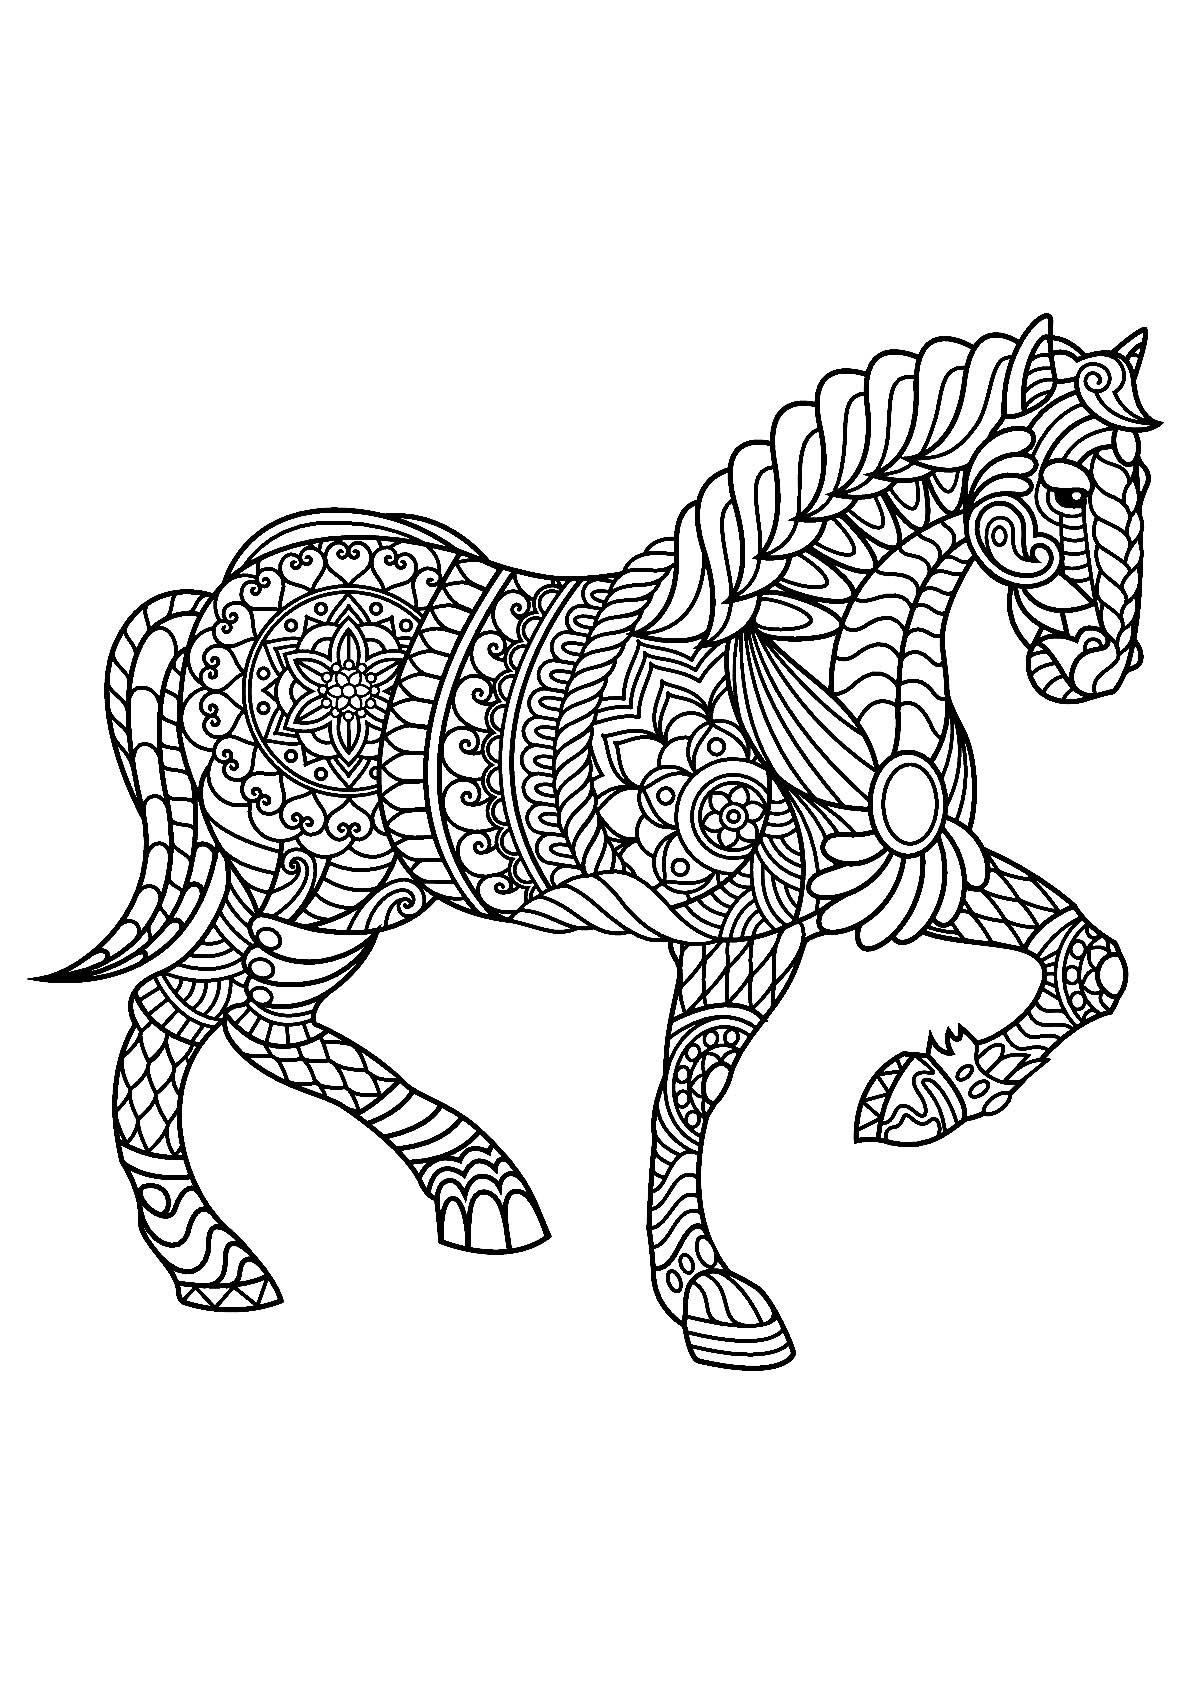 coloring page of horse free horse coloring pages selah works cindy39s adult of coloring page horse